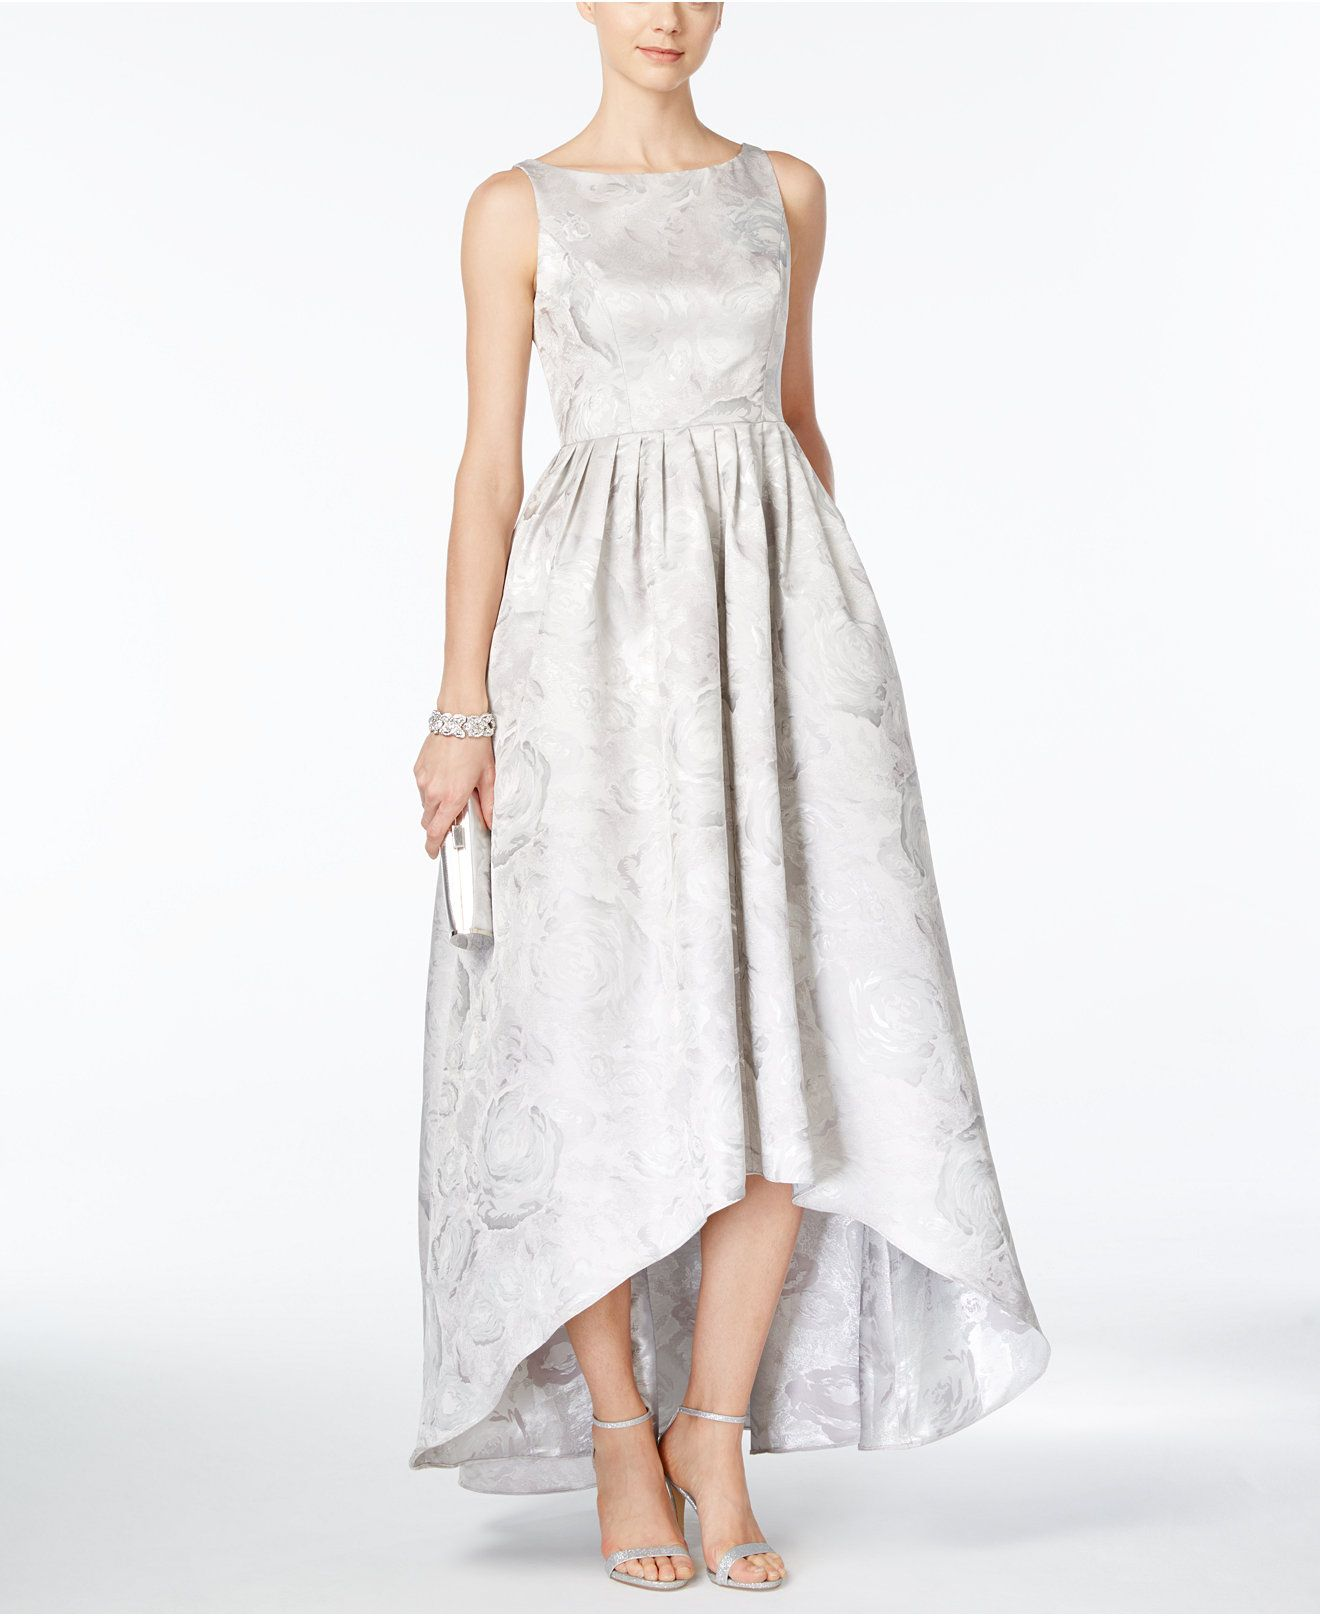 Macy's party dresses weddings  Adrianna Papell FloralJacquard HighLow Gown  Dresses  Women